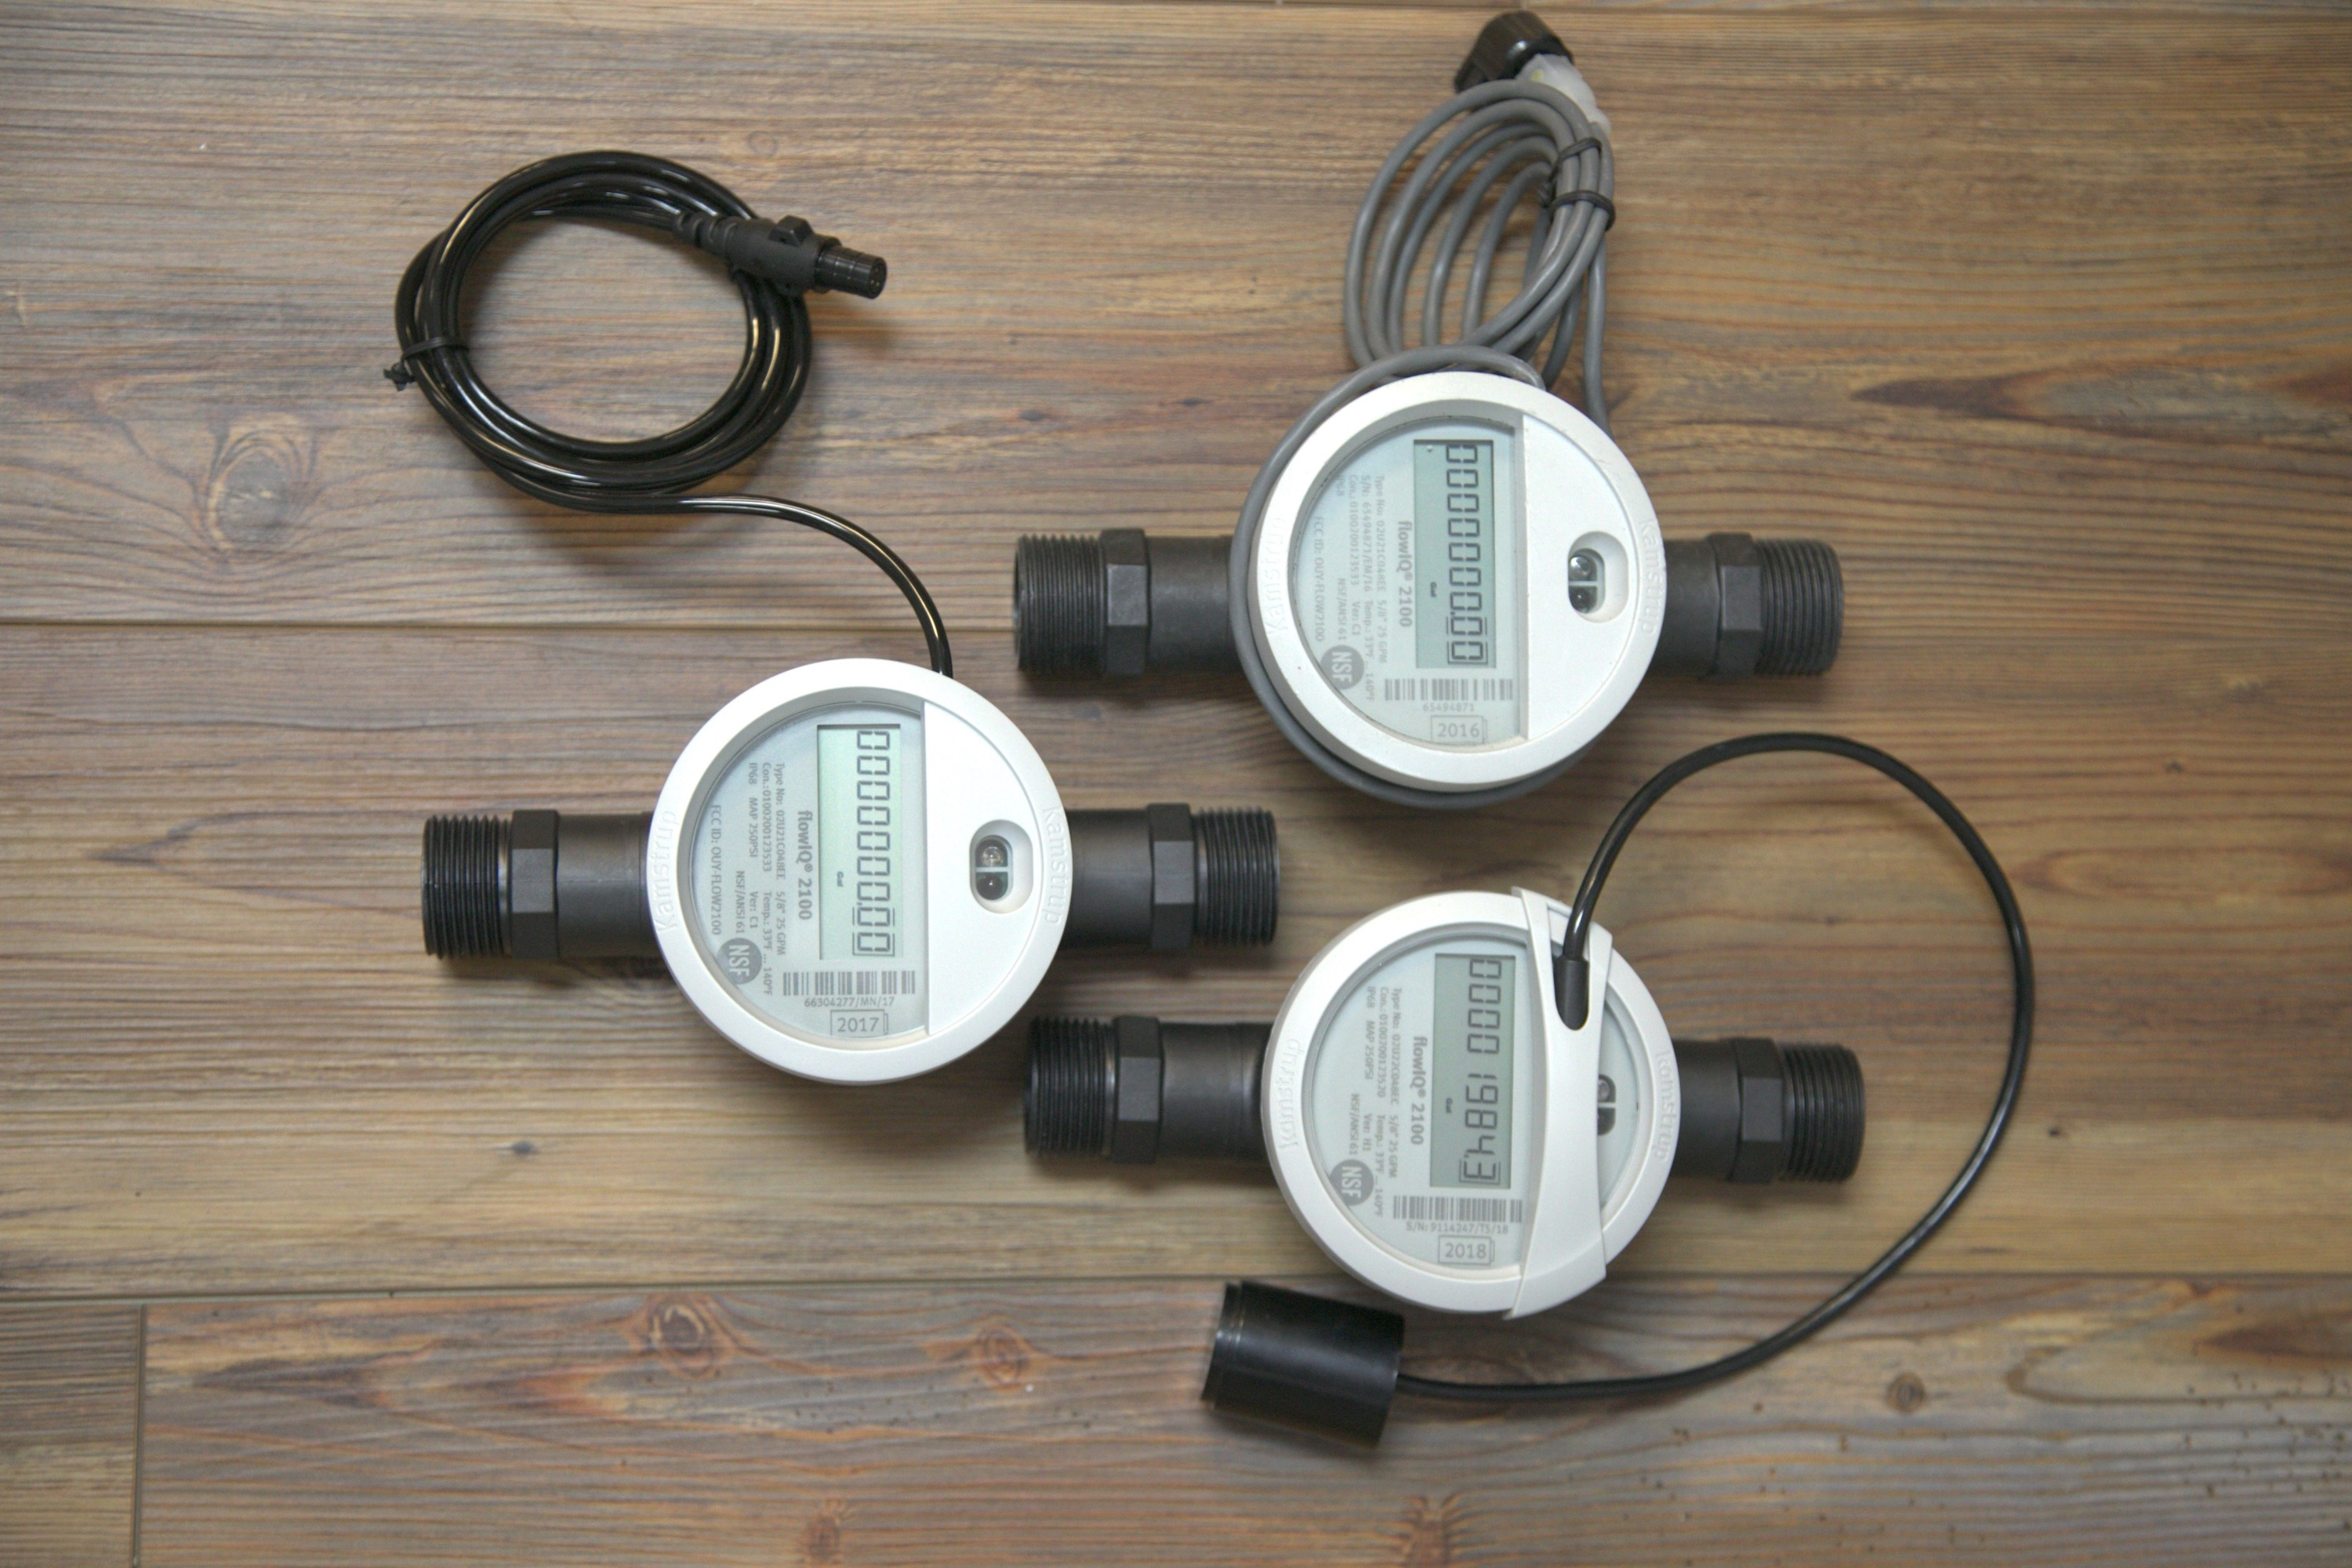 Kamstrup Encoded Meters